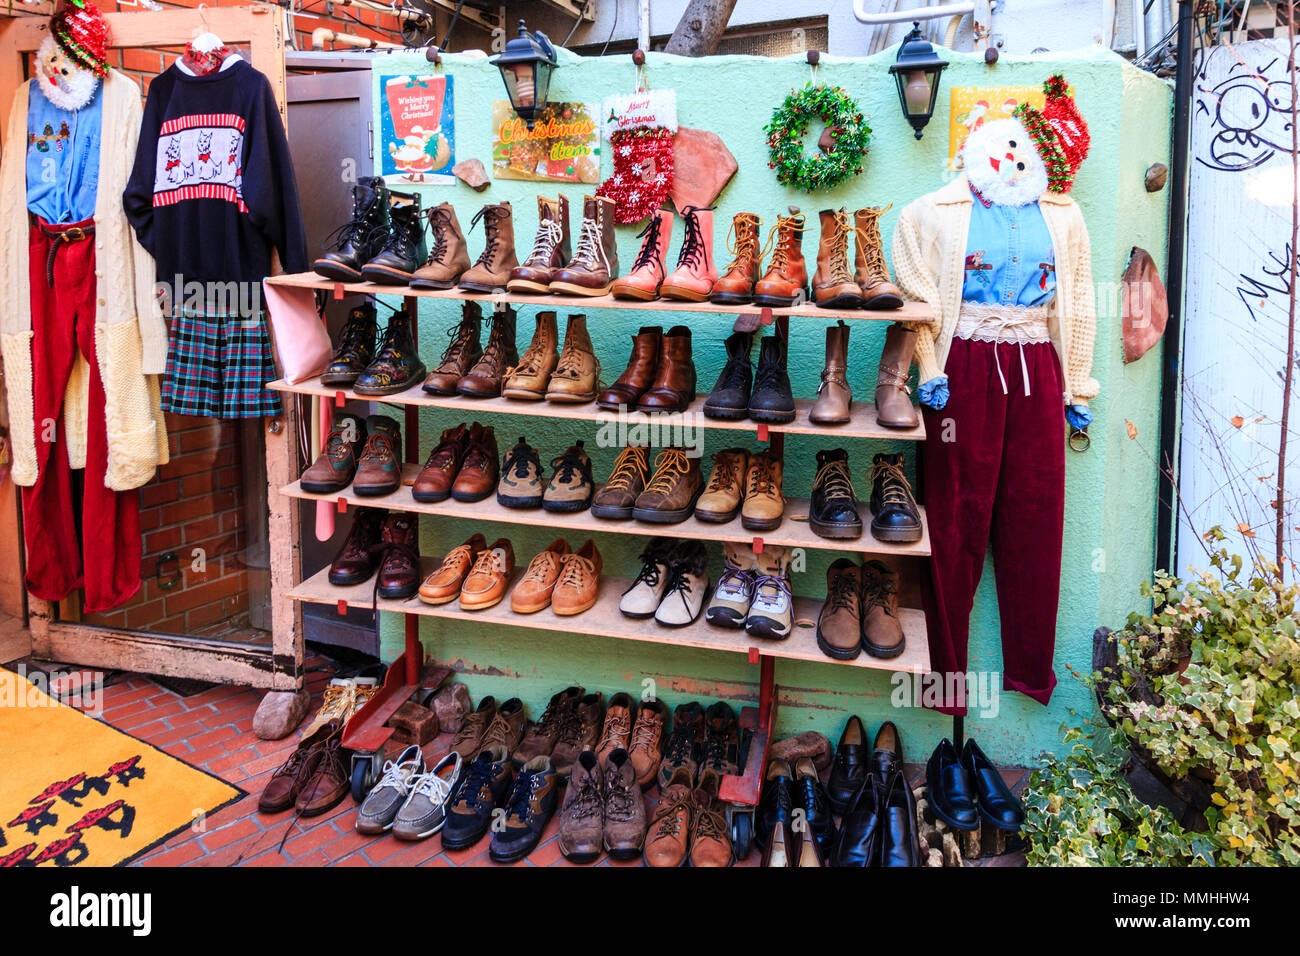 tokyo harajuku takeshita street panama boy used store exterior rack of boots on sale christmas decorations